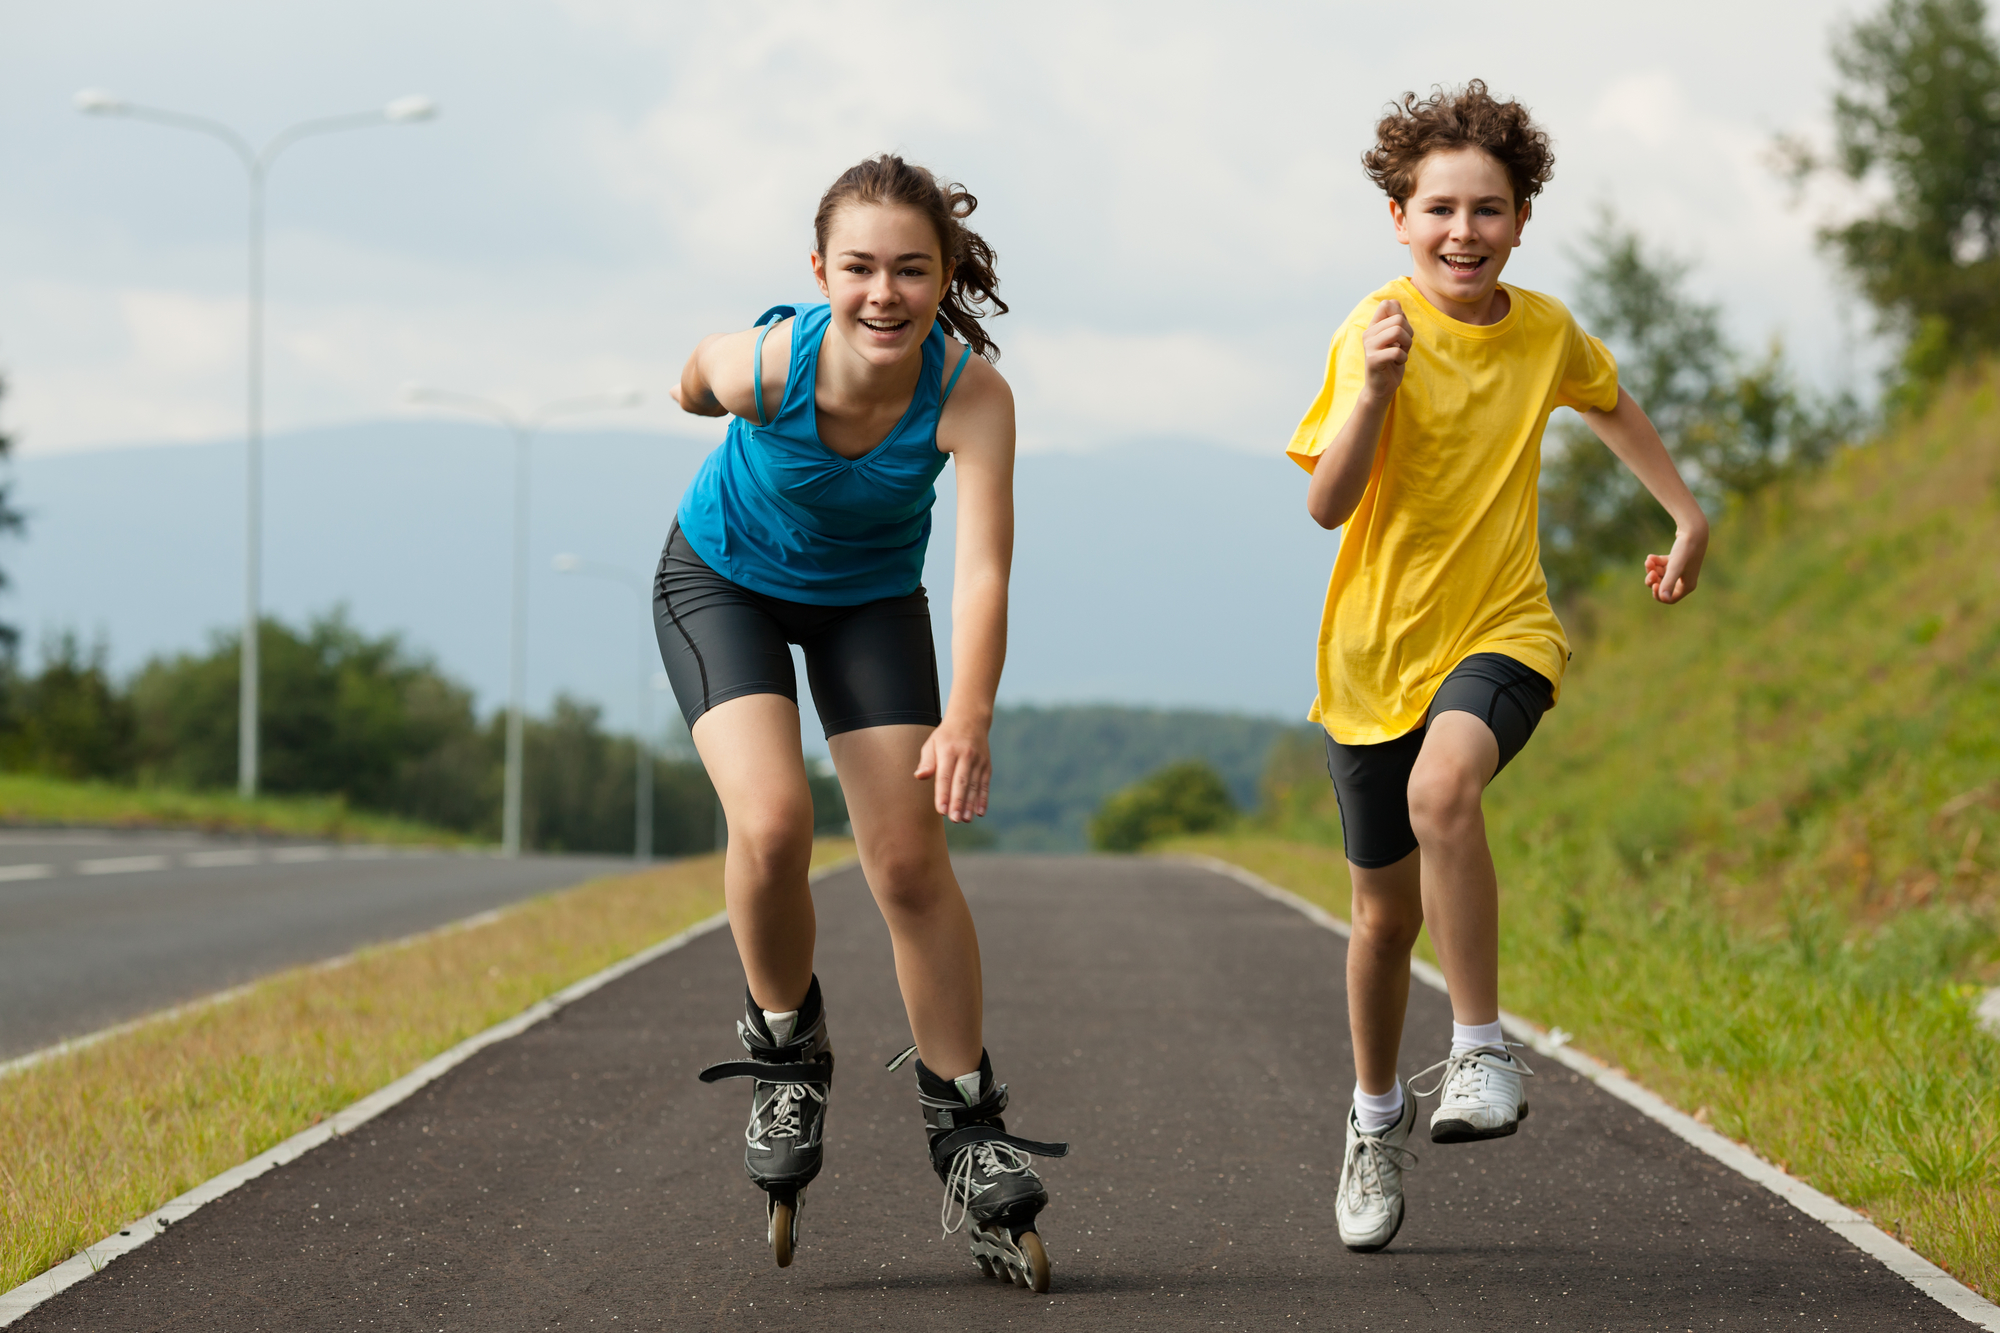 14-year-olds exercising to grow taller